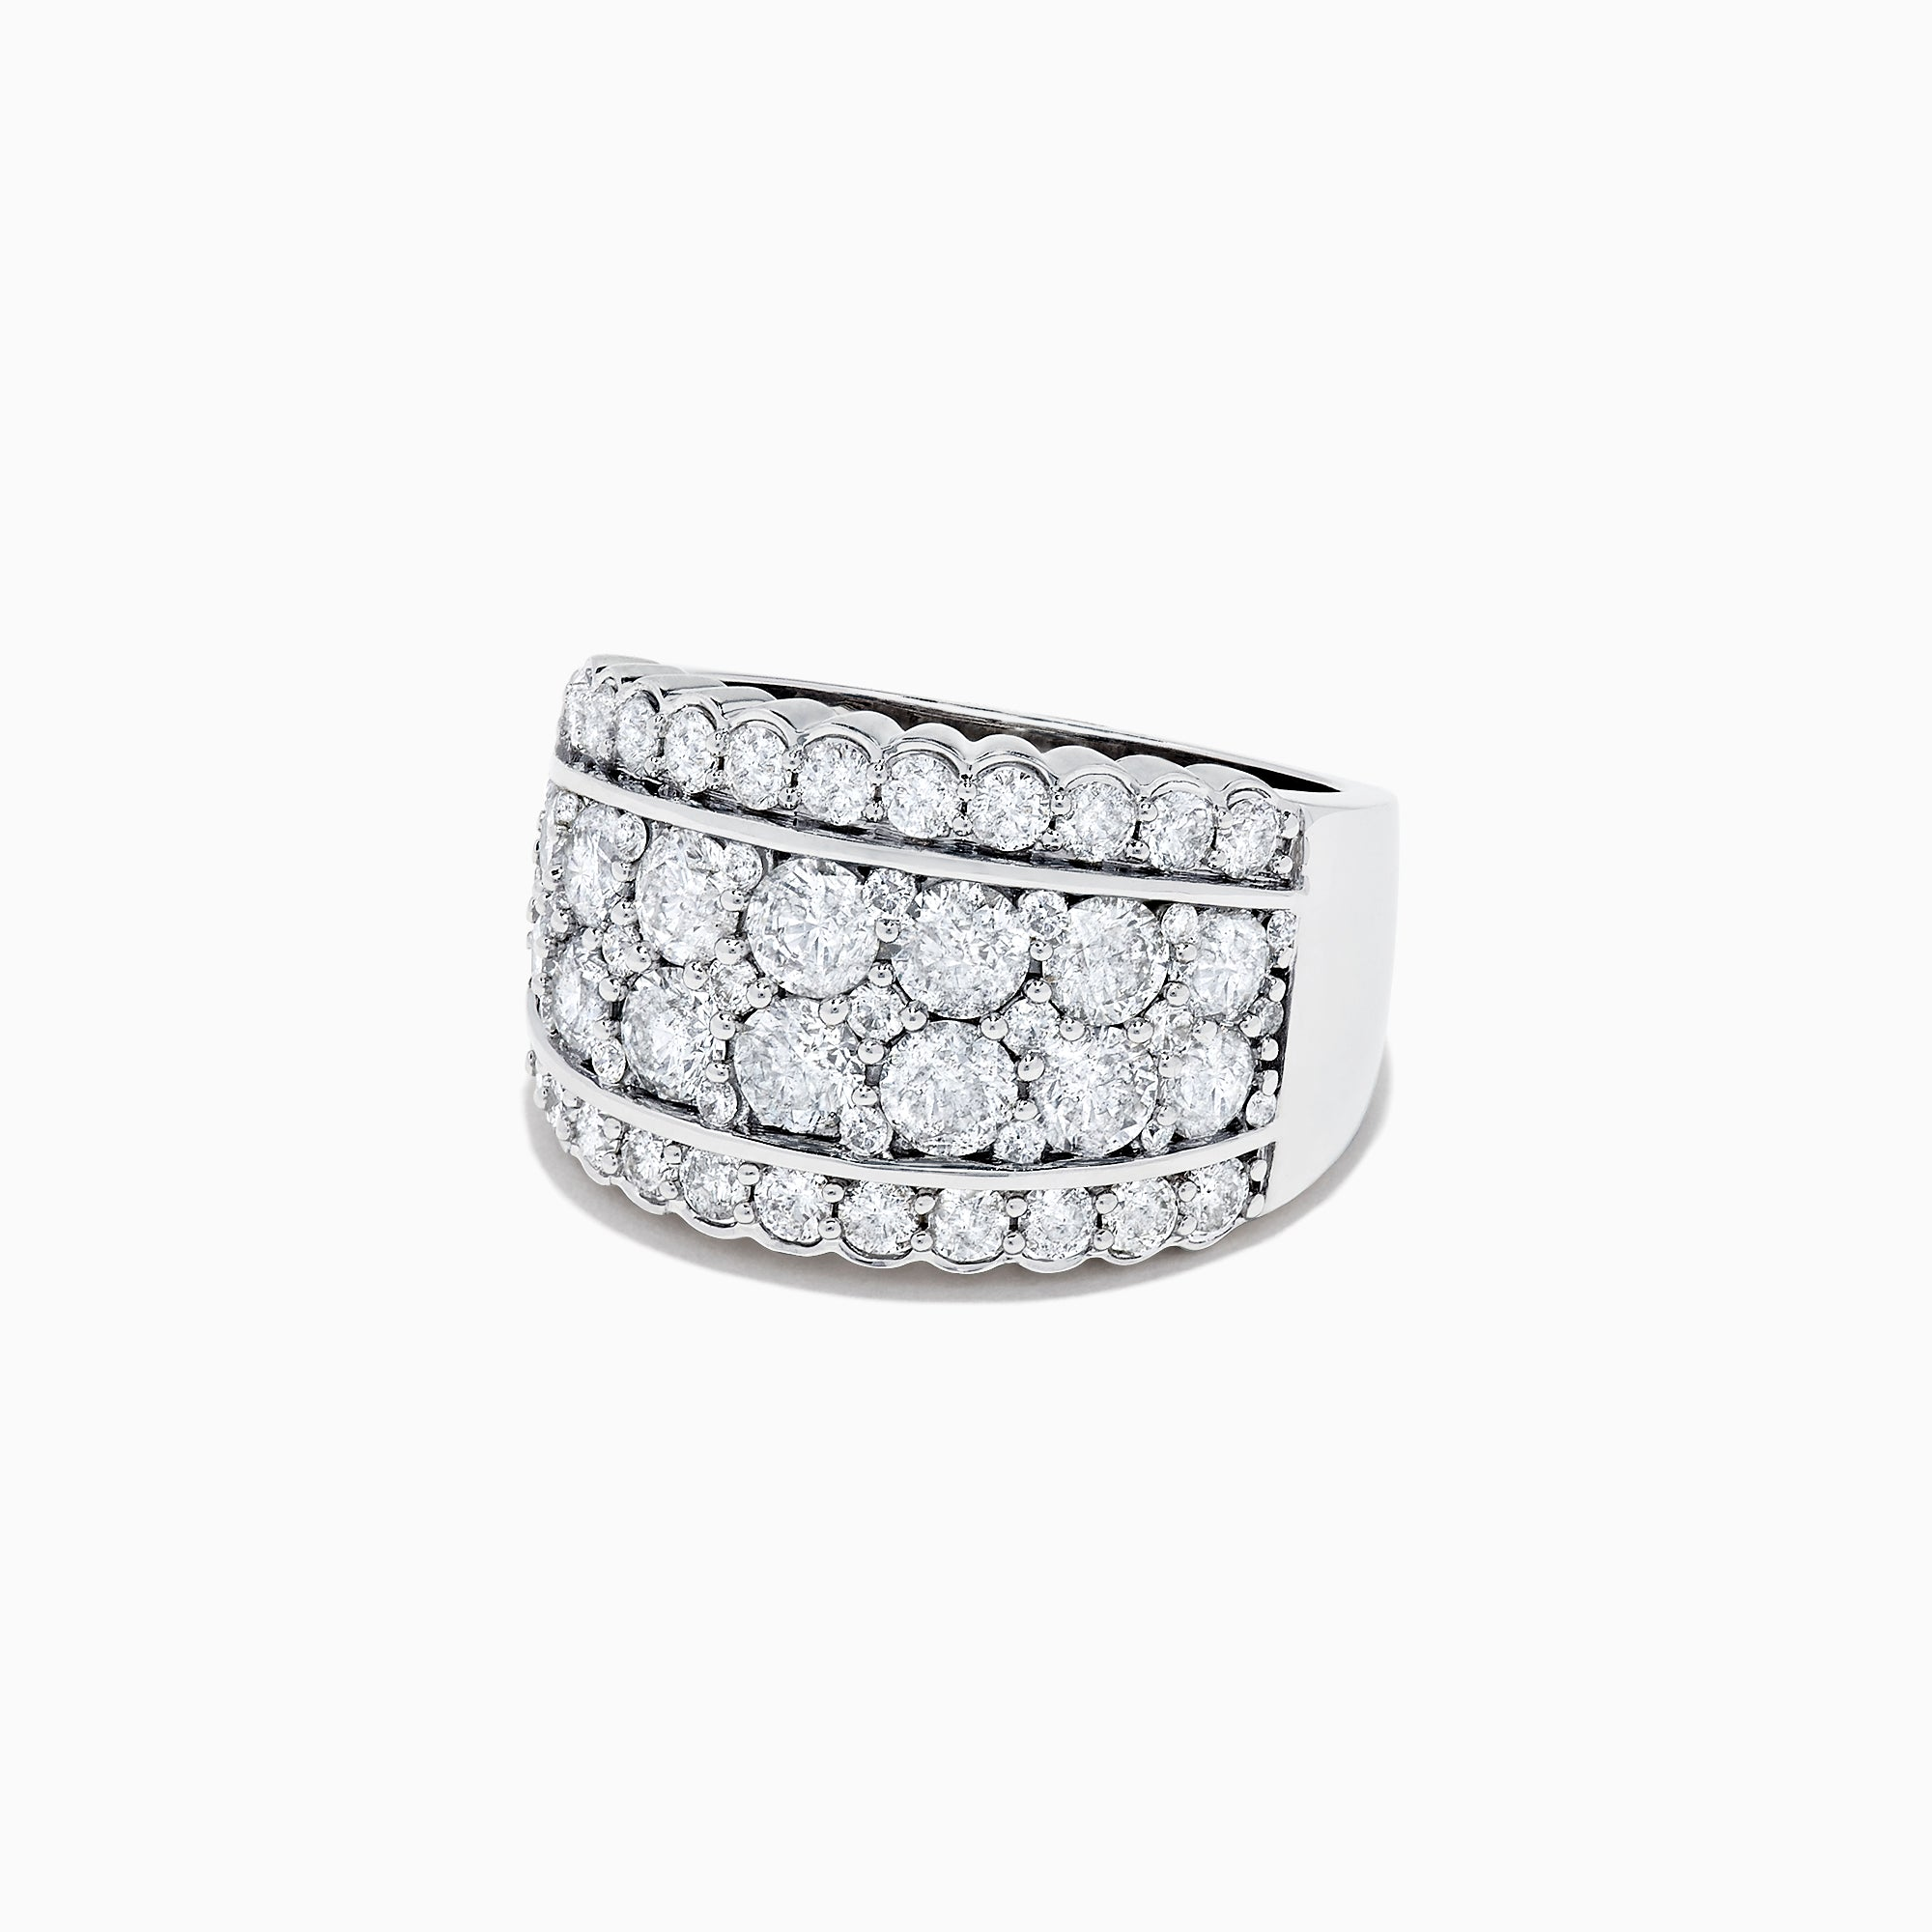 Effy Pave Classica 14K White Gold Diamond Wide Band Ring, 1.54 TCW